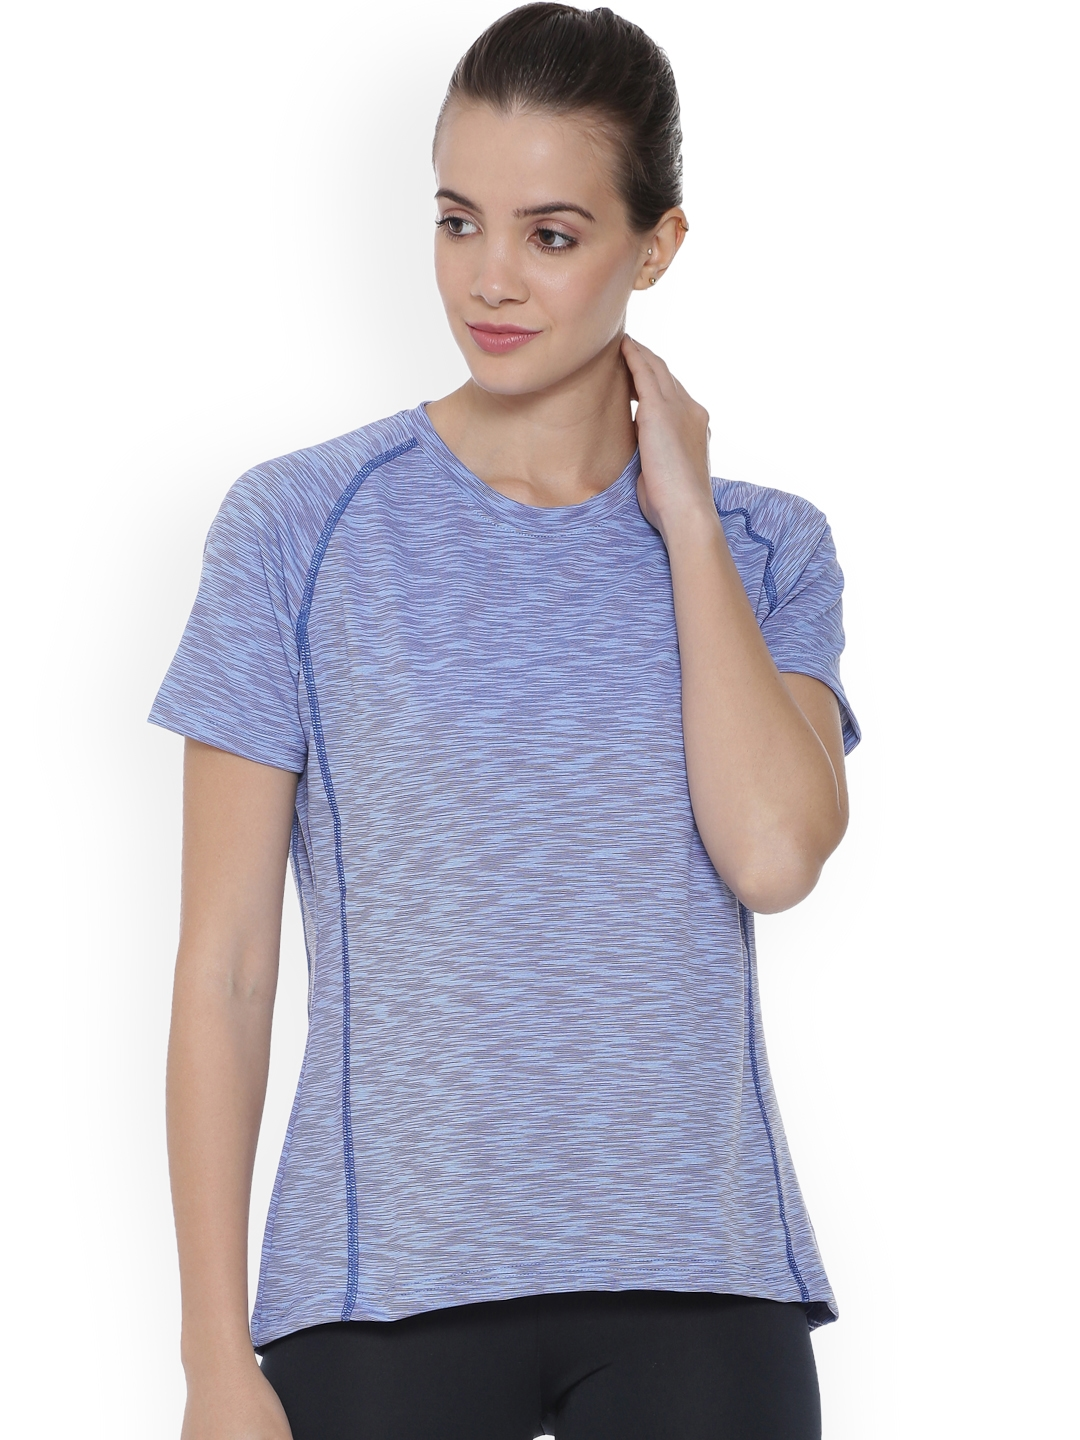 f6bca30e034 Buy Campus Sutra Women Blue Striped Round Neck T Shirt - Tshirts for ...